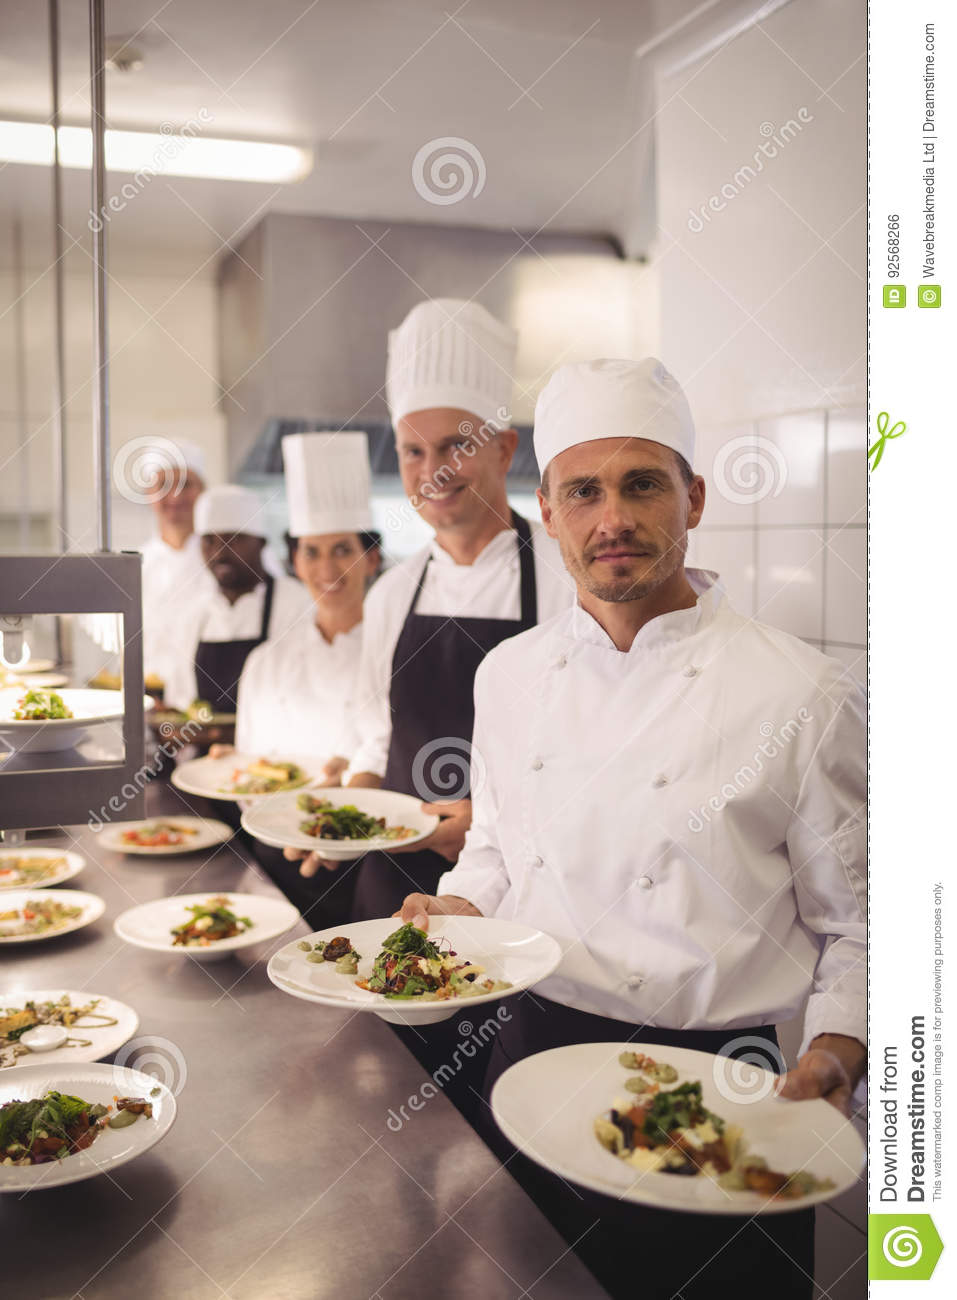 Chefs presenting food plates